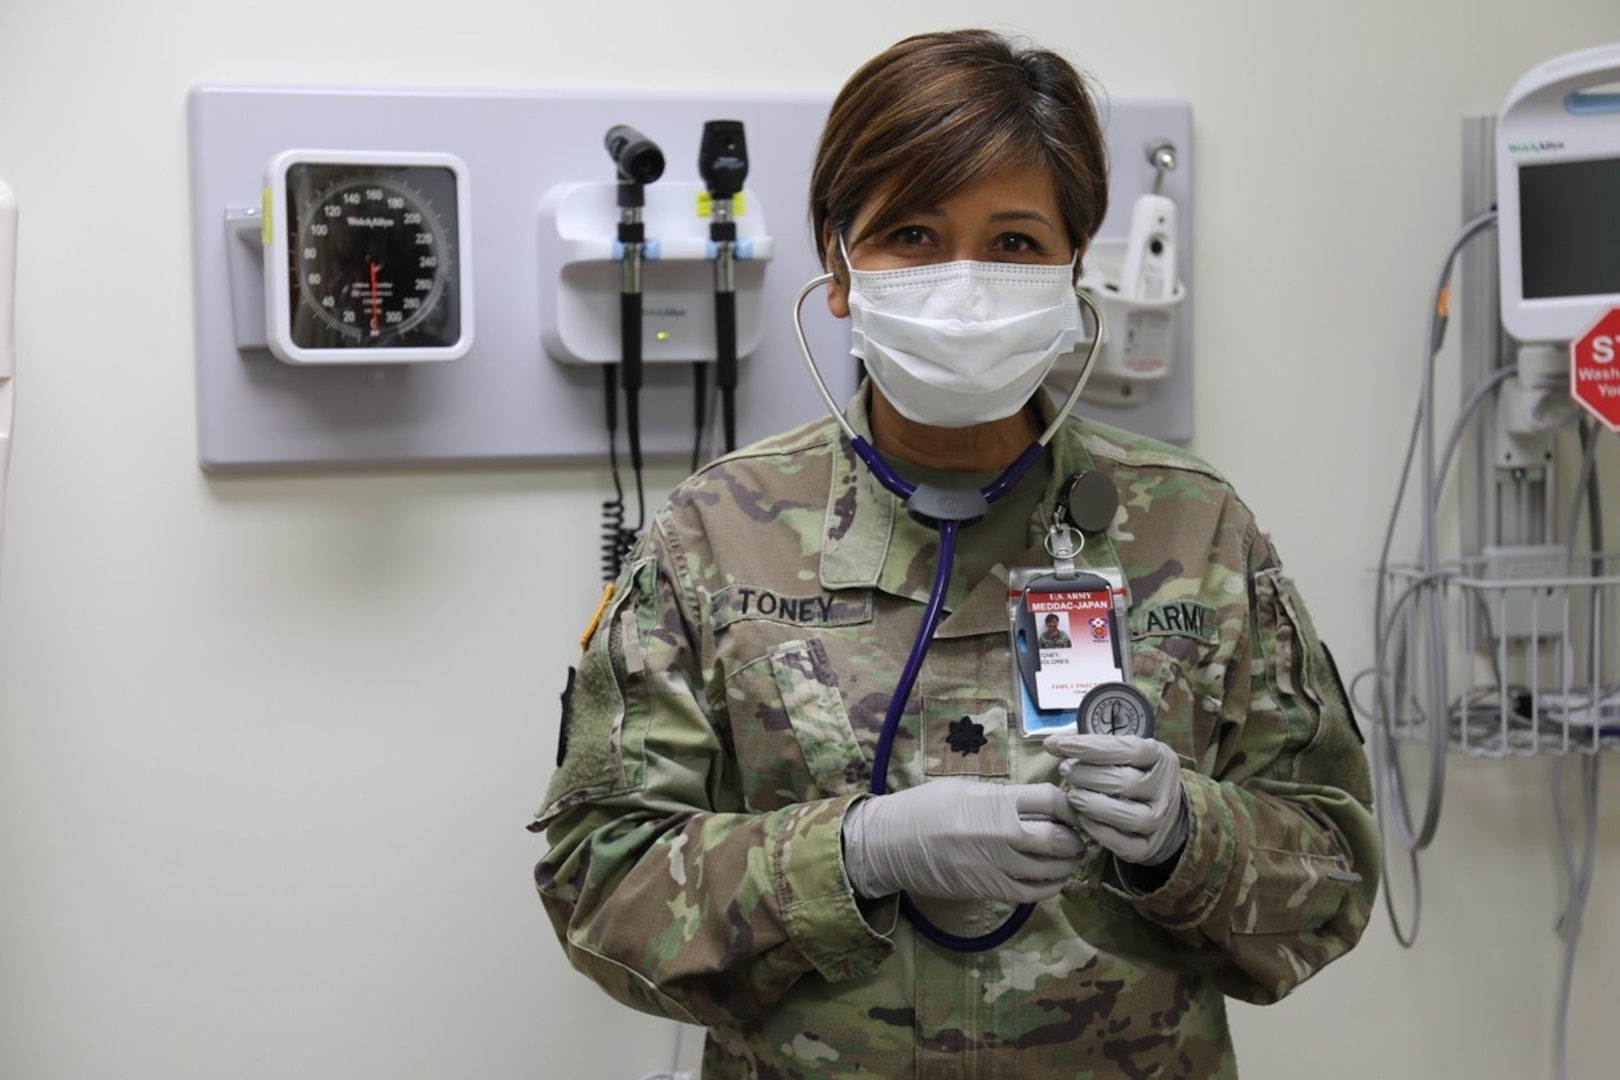 Family Nurse Practitioner Gives Back to Army in Face of COVID-19